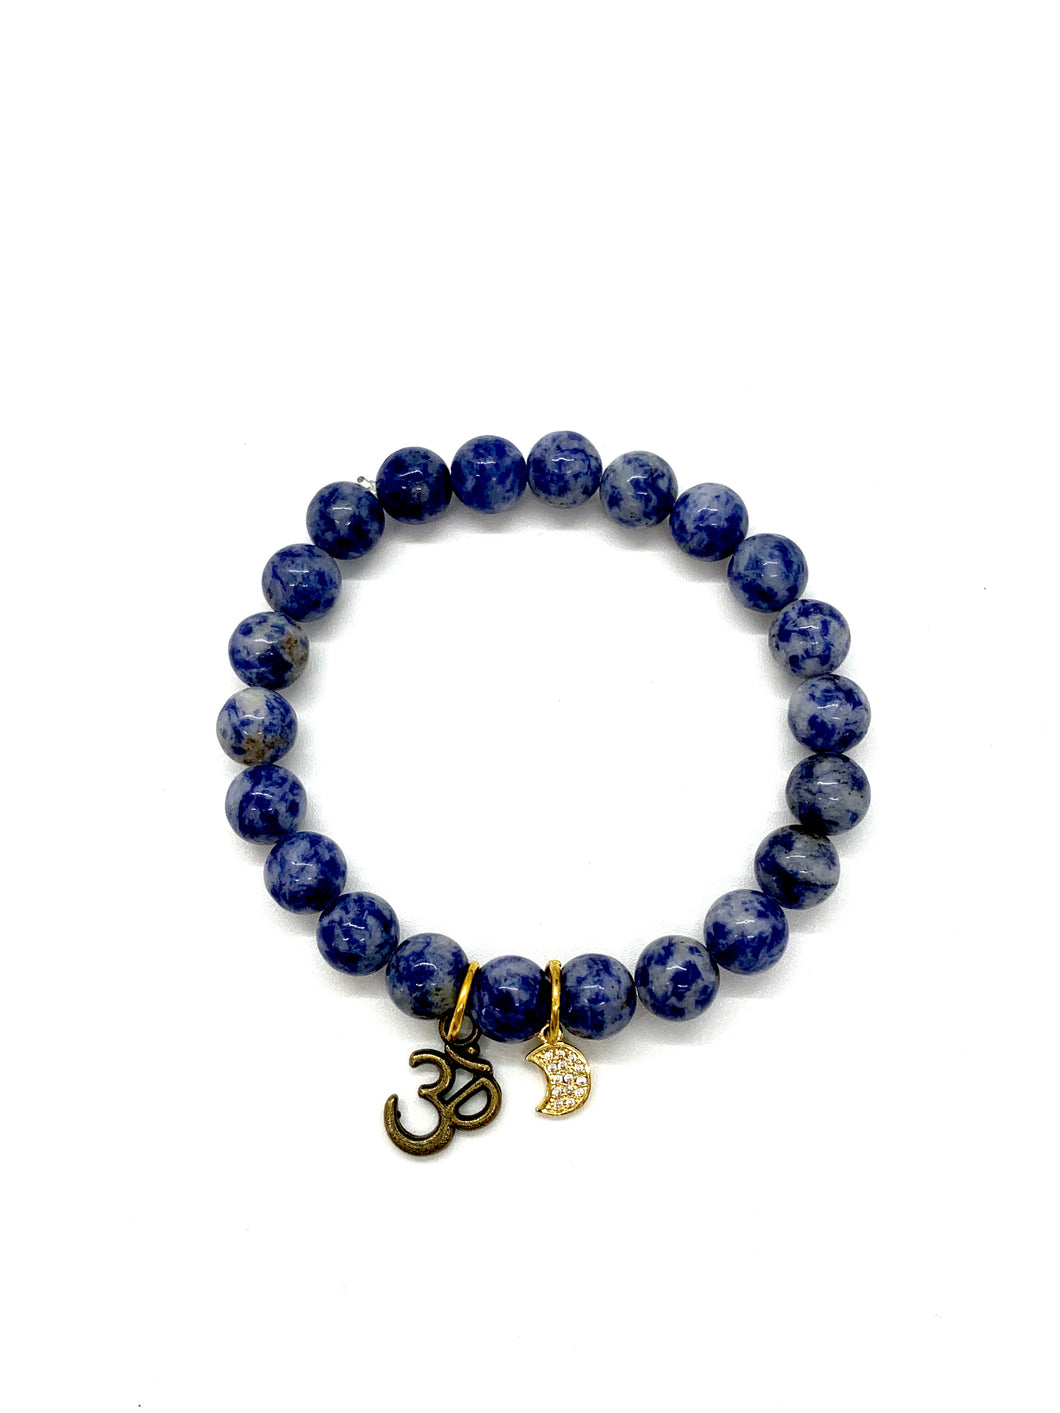 The OM symbol is for high vibration and the moon is for action. Bracelet materials include 8mm sodalite stones on an elastic cord with a bronze Om charm and an 18k gold-plated moon charm. Both are adorned with Austrian crystals. Bracelet measures 7.25 inches. Charms are lead & nickel free. Custom sizing is available by Contacting Us.